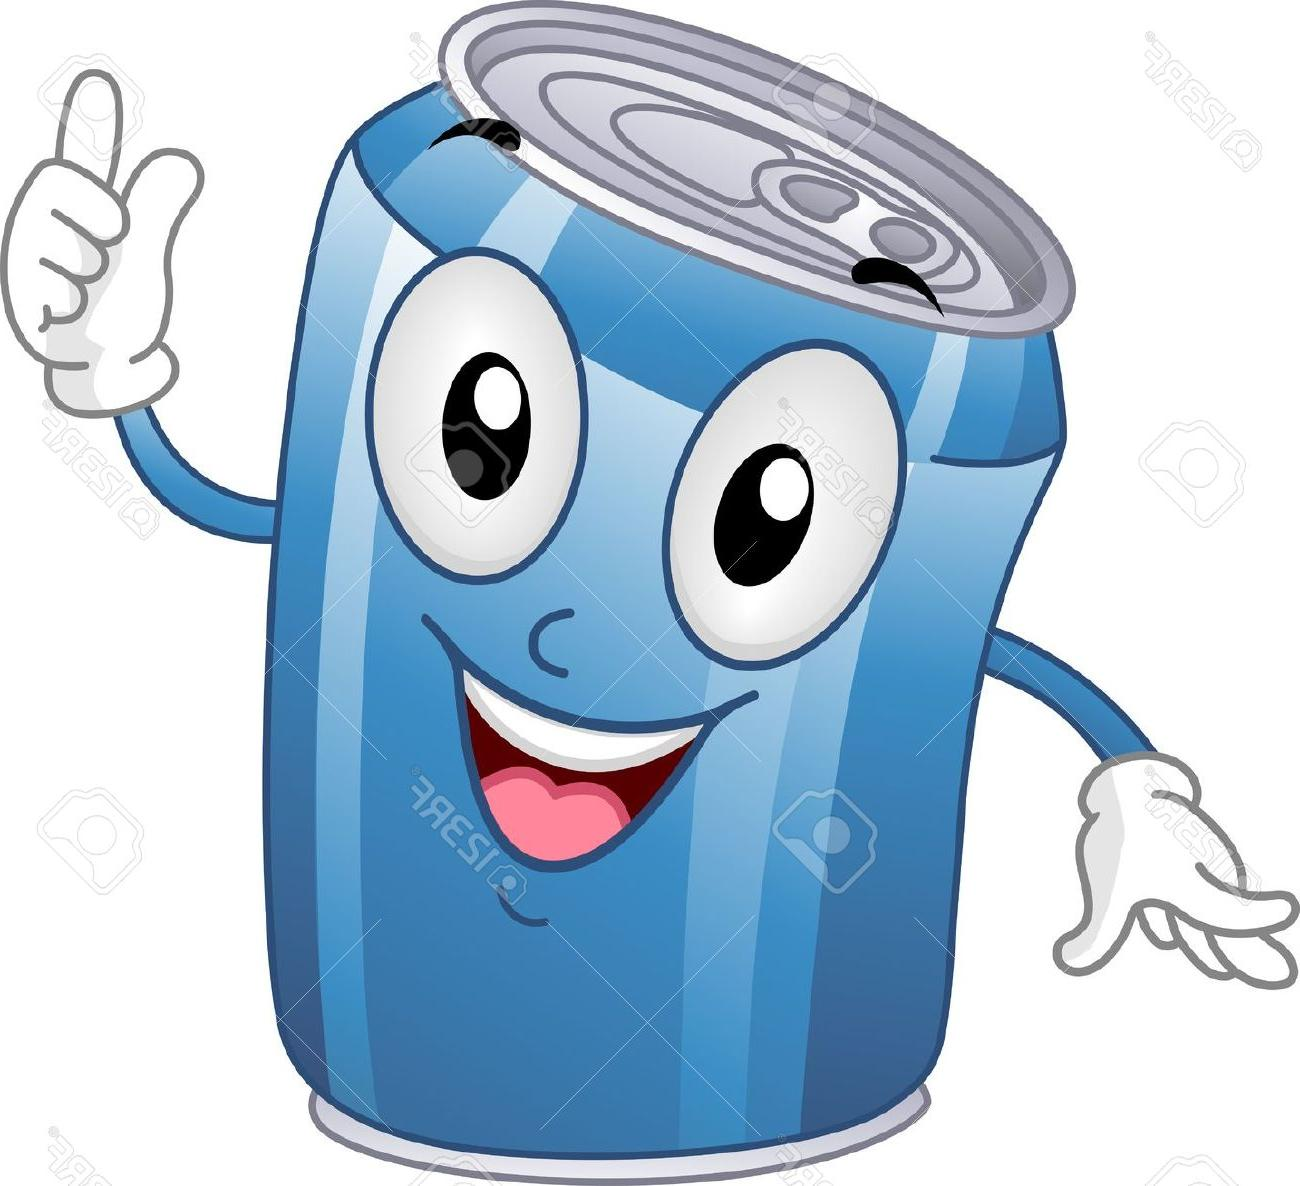 1300x1186 Best Mascot Illustration Featuring Soda Can Stock Cartoon File Free